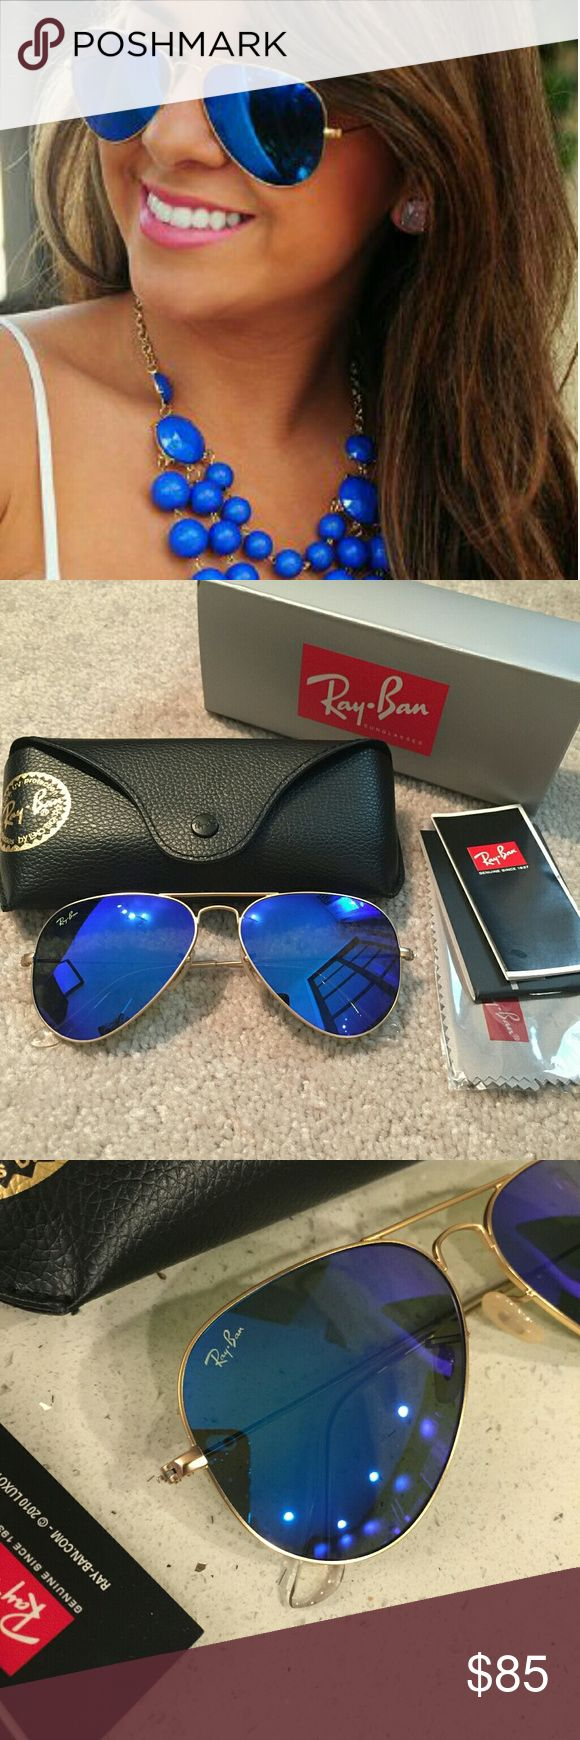 Authentic Ray Ban Aviator RB3025 in Blue gold ❤️️All my item are 100% Authentic / Real Ray ban ❤️Brand new never used  ❤️️Ray Ban Aviator RB3025 lens size 58MM ❤️made in Italy ❤️Frame color Gold ❤️come with case,cloth, booklet and box.  💕Feel free to ask any question💕 Ray-Ban Accessories Glasses